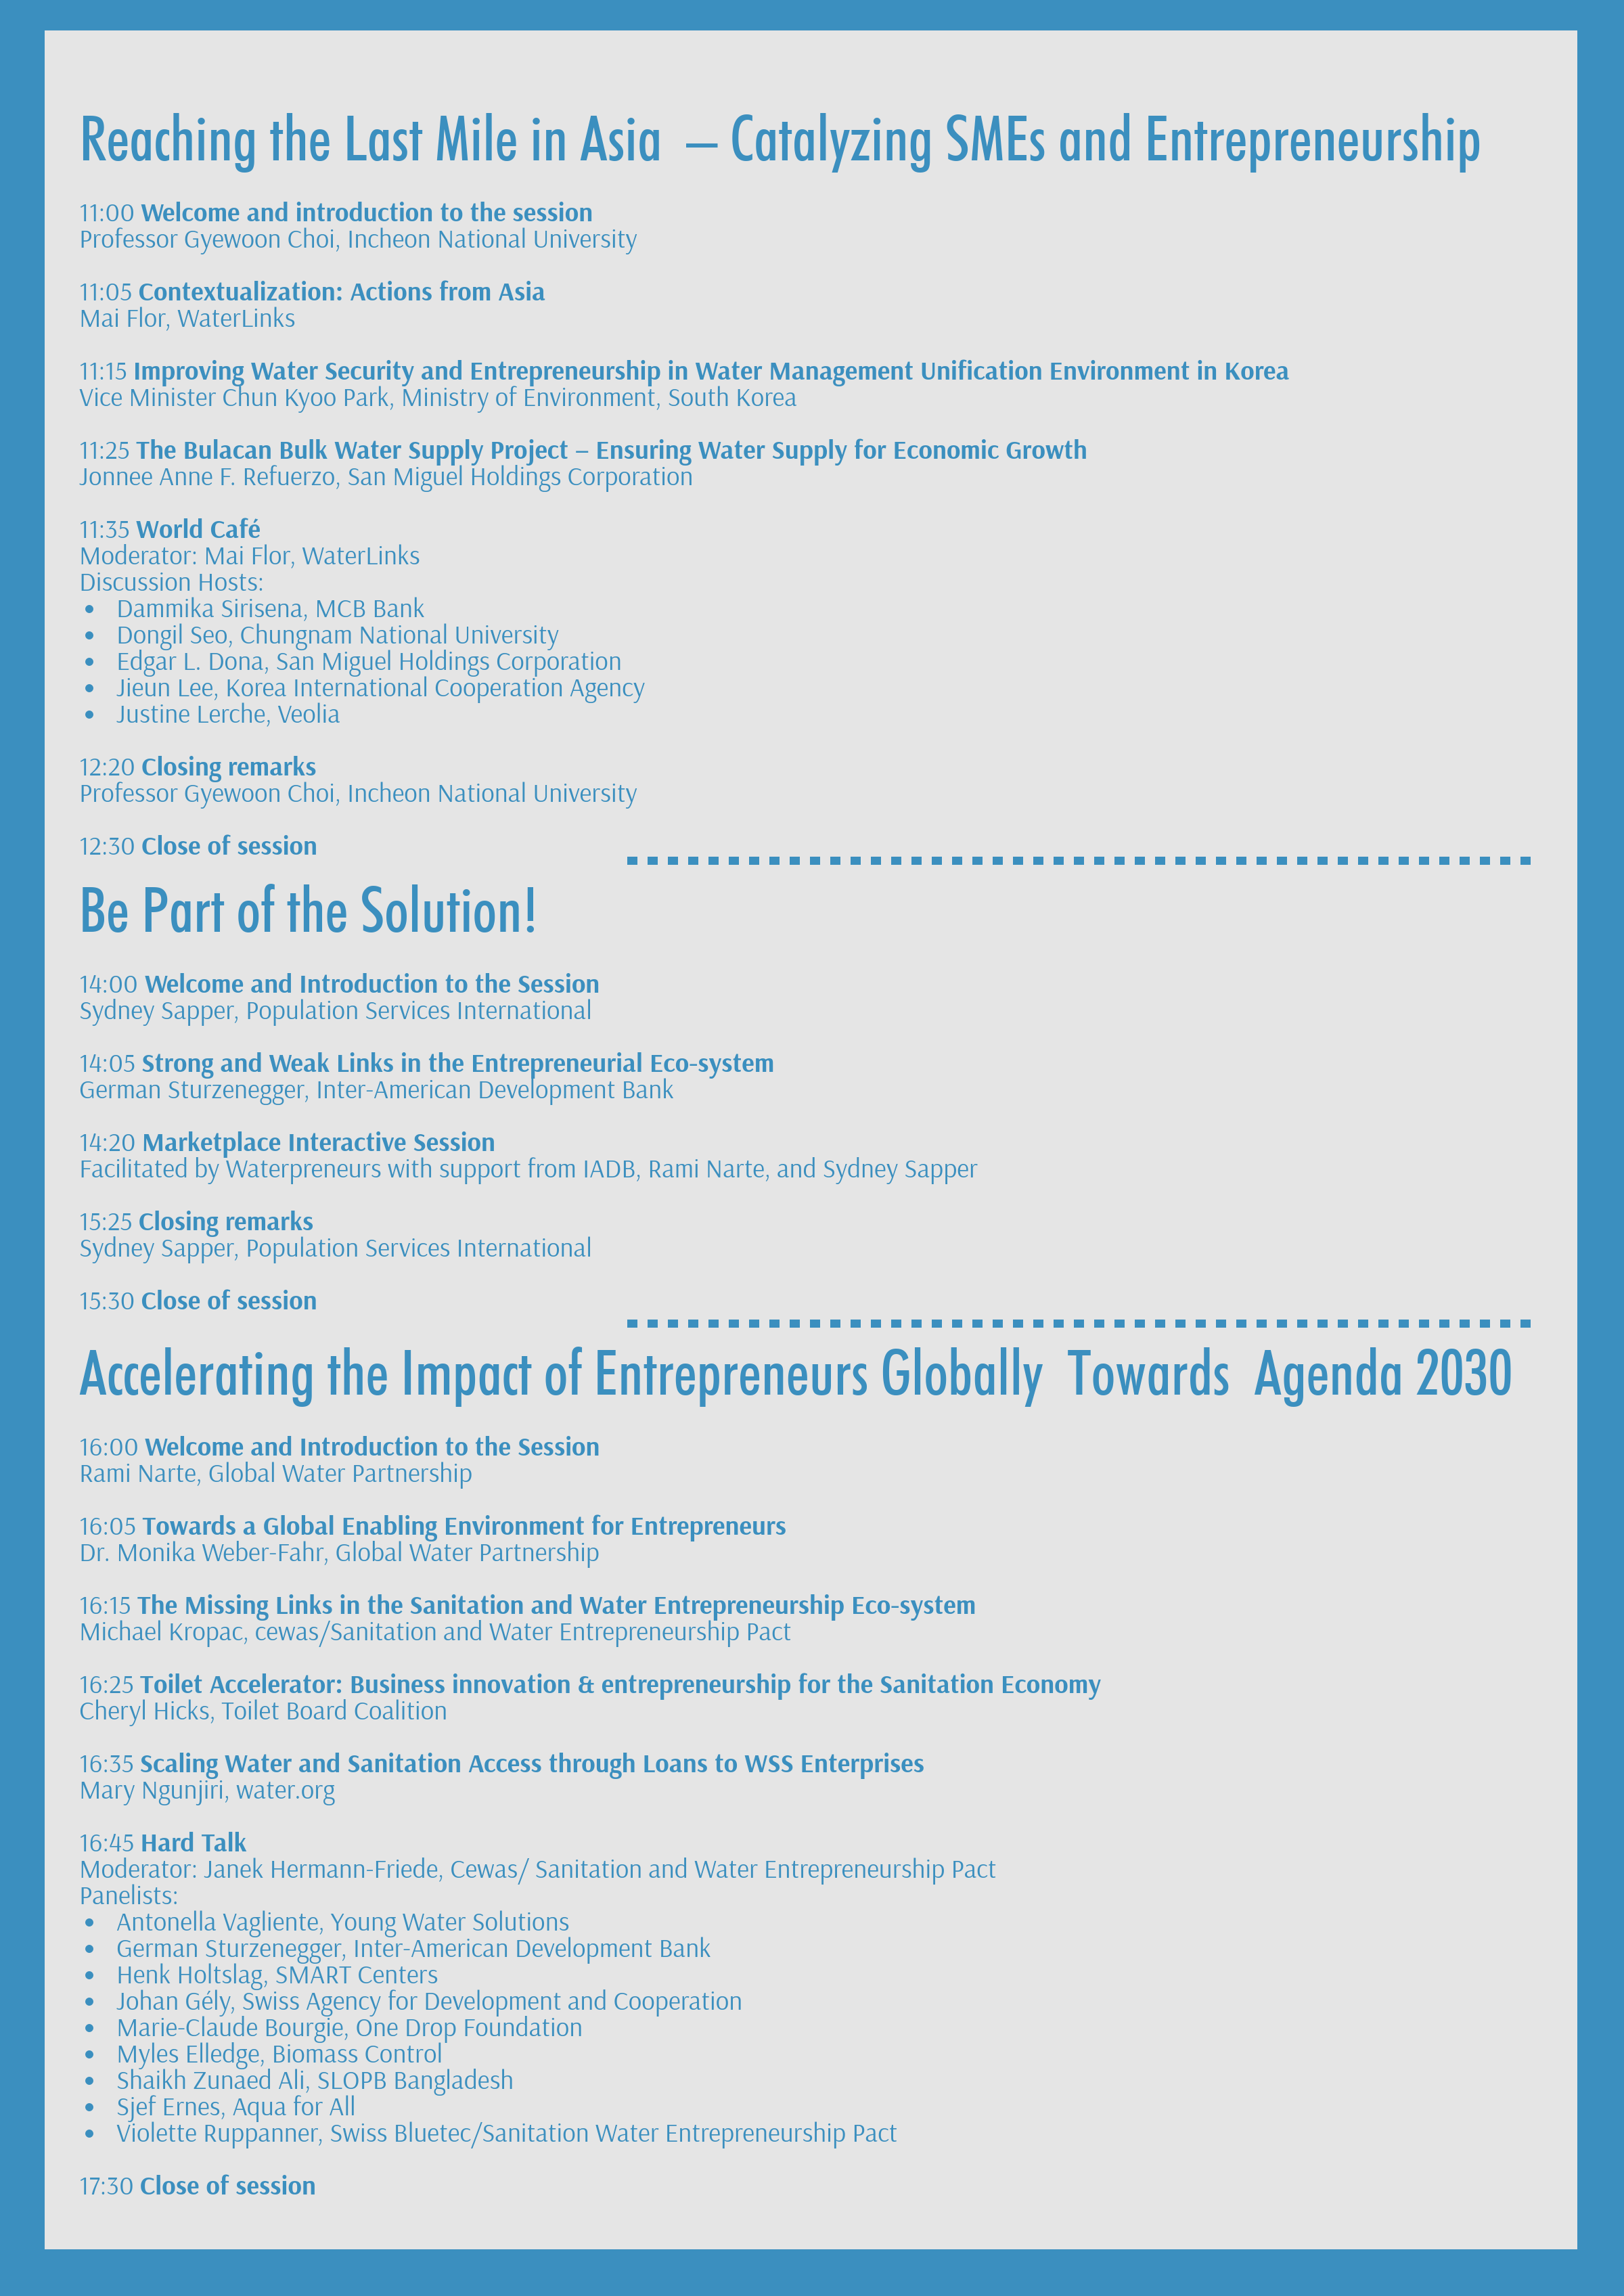 The programme for our full day seminar at #WWWeek2019 is out